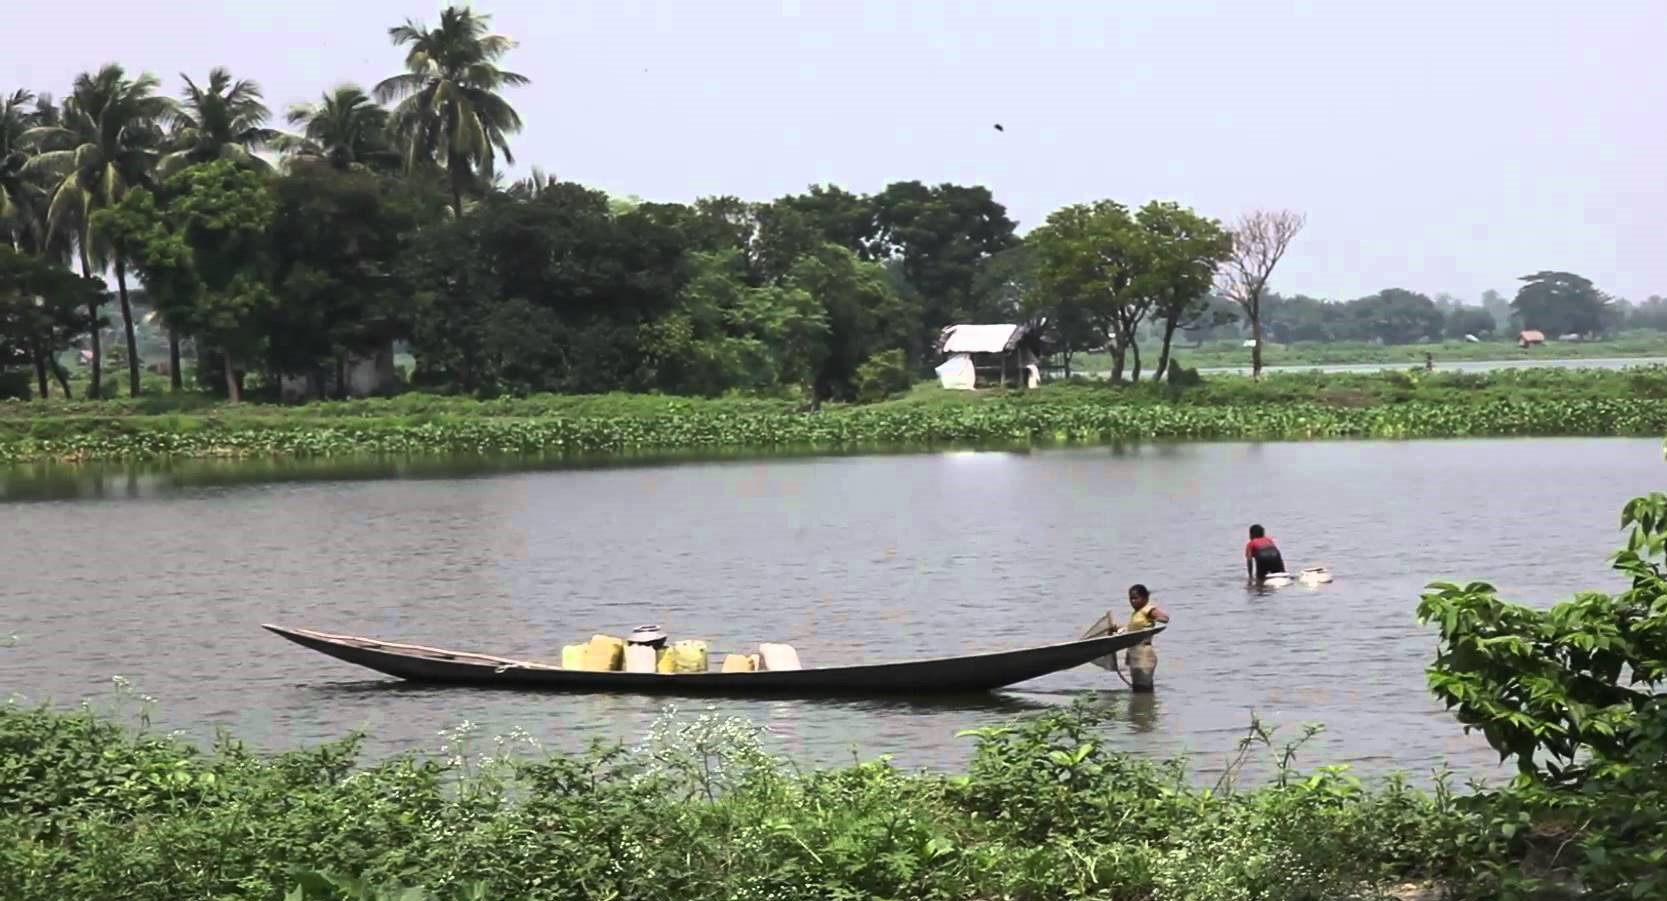 Natural Wetland in India Filters 198 Million Gallons of Waste Every Day Without Chemicals East-Kolkata-Wetlands-2